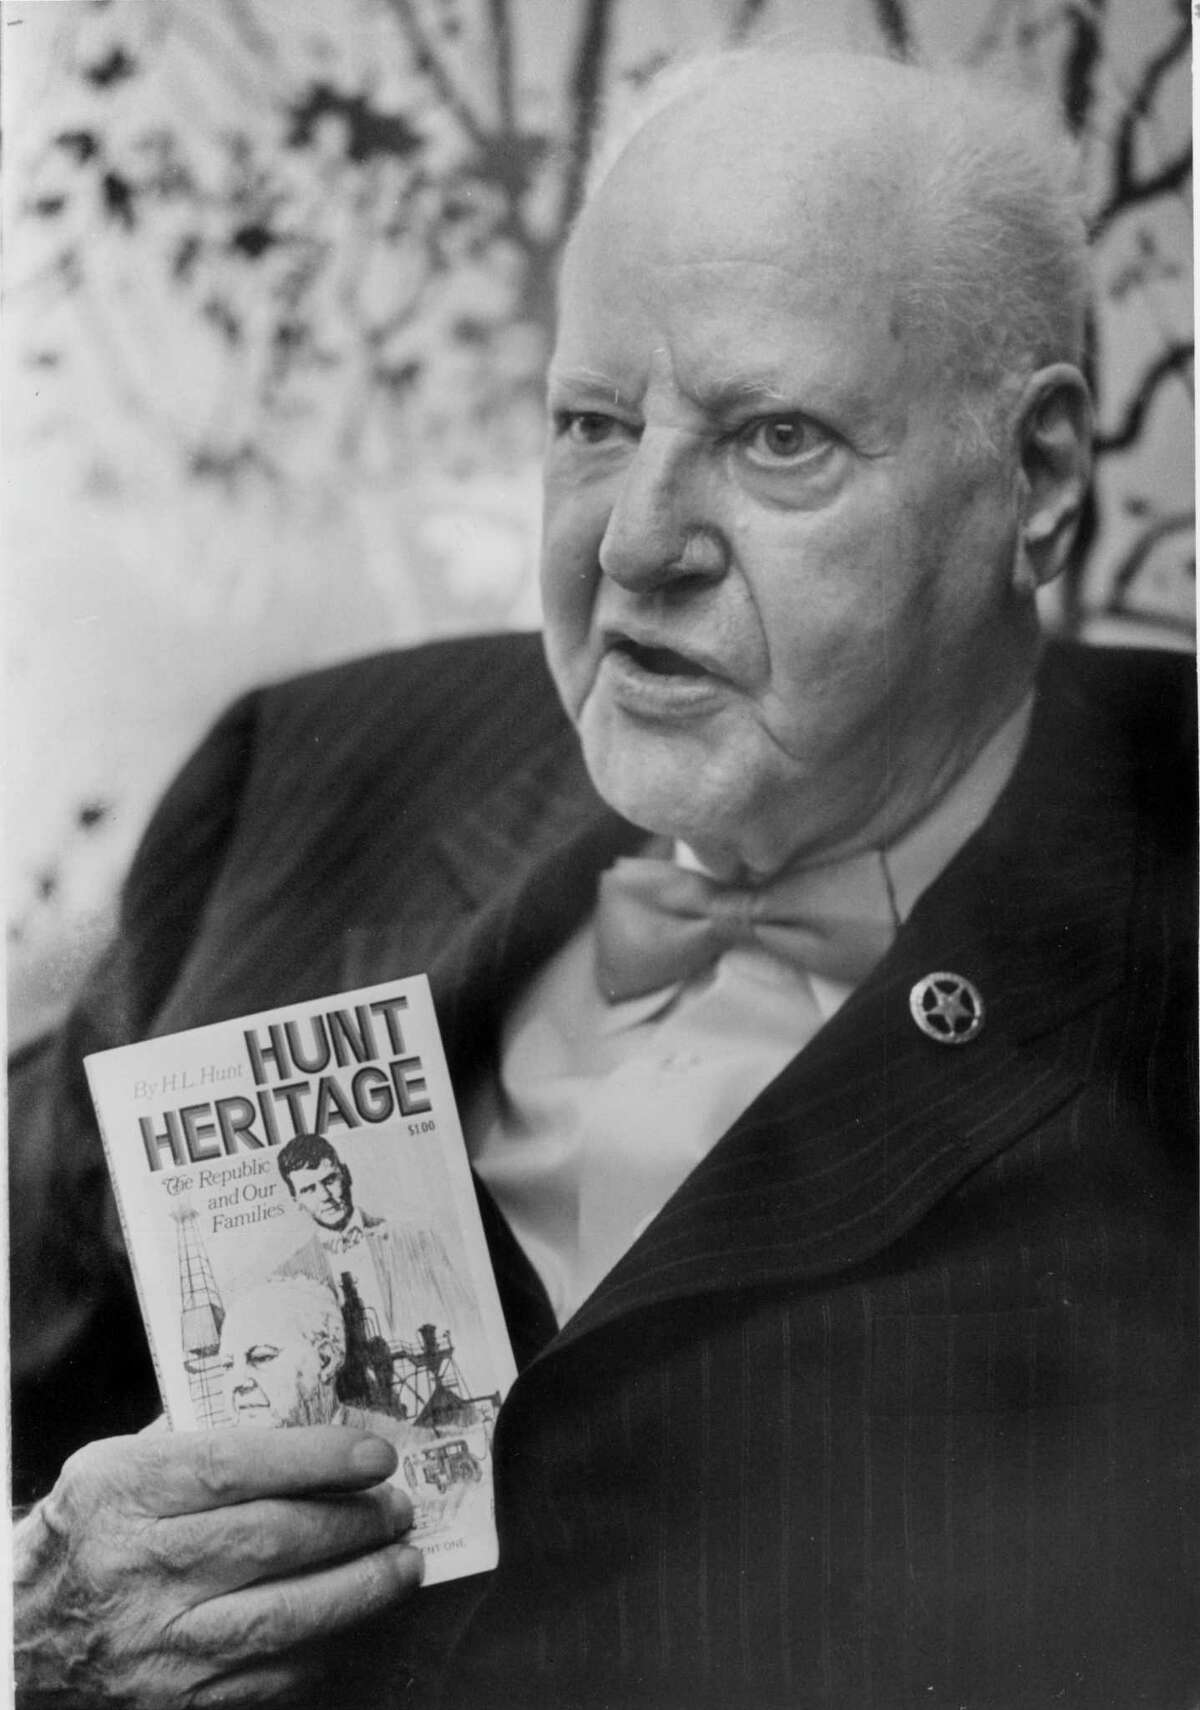 """PHOTO FILED: H.L. HUNT. 06/1973 - Dallas oil billionaire, H.L. Hunt, promotes his book, 'The Hunt Heritage', June 14, 1973. Blair Pittman / Houston Chronicle HOUCHRON CAPTION (06/14/1973): HUNT PLUGS BOOK. Dallas oil Billionaire H.L. Hunt here to visit friends and to promote his book, """"The Hunt Heritage,"""" says he is asking all non-Communists to write letters to the editors of newspapers urging preservation of freedom in the United States. He said the Watergate bugging was a disgrace. HOUCHRON CAPTION (11/29/1974); H.L. HUNT DIES AT AGE 85 HOUCHRON CAPTION (11/05/2000): None (H.L. Hunt Mug) HOUCHRON CAPTION (11/05/2000): H.L. Hunt in 1973 HOUSTON CHRONICLE SPECIAL SECTION/TEXAS MAGAZINE: 100 TALL TEXANS."""